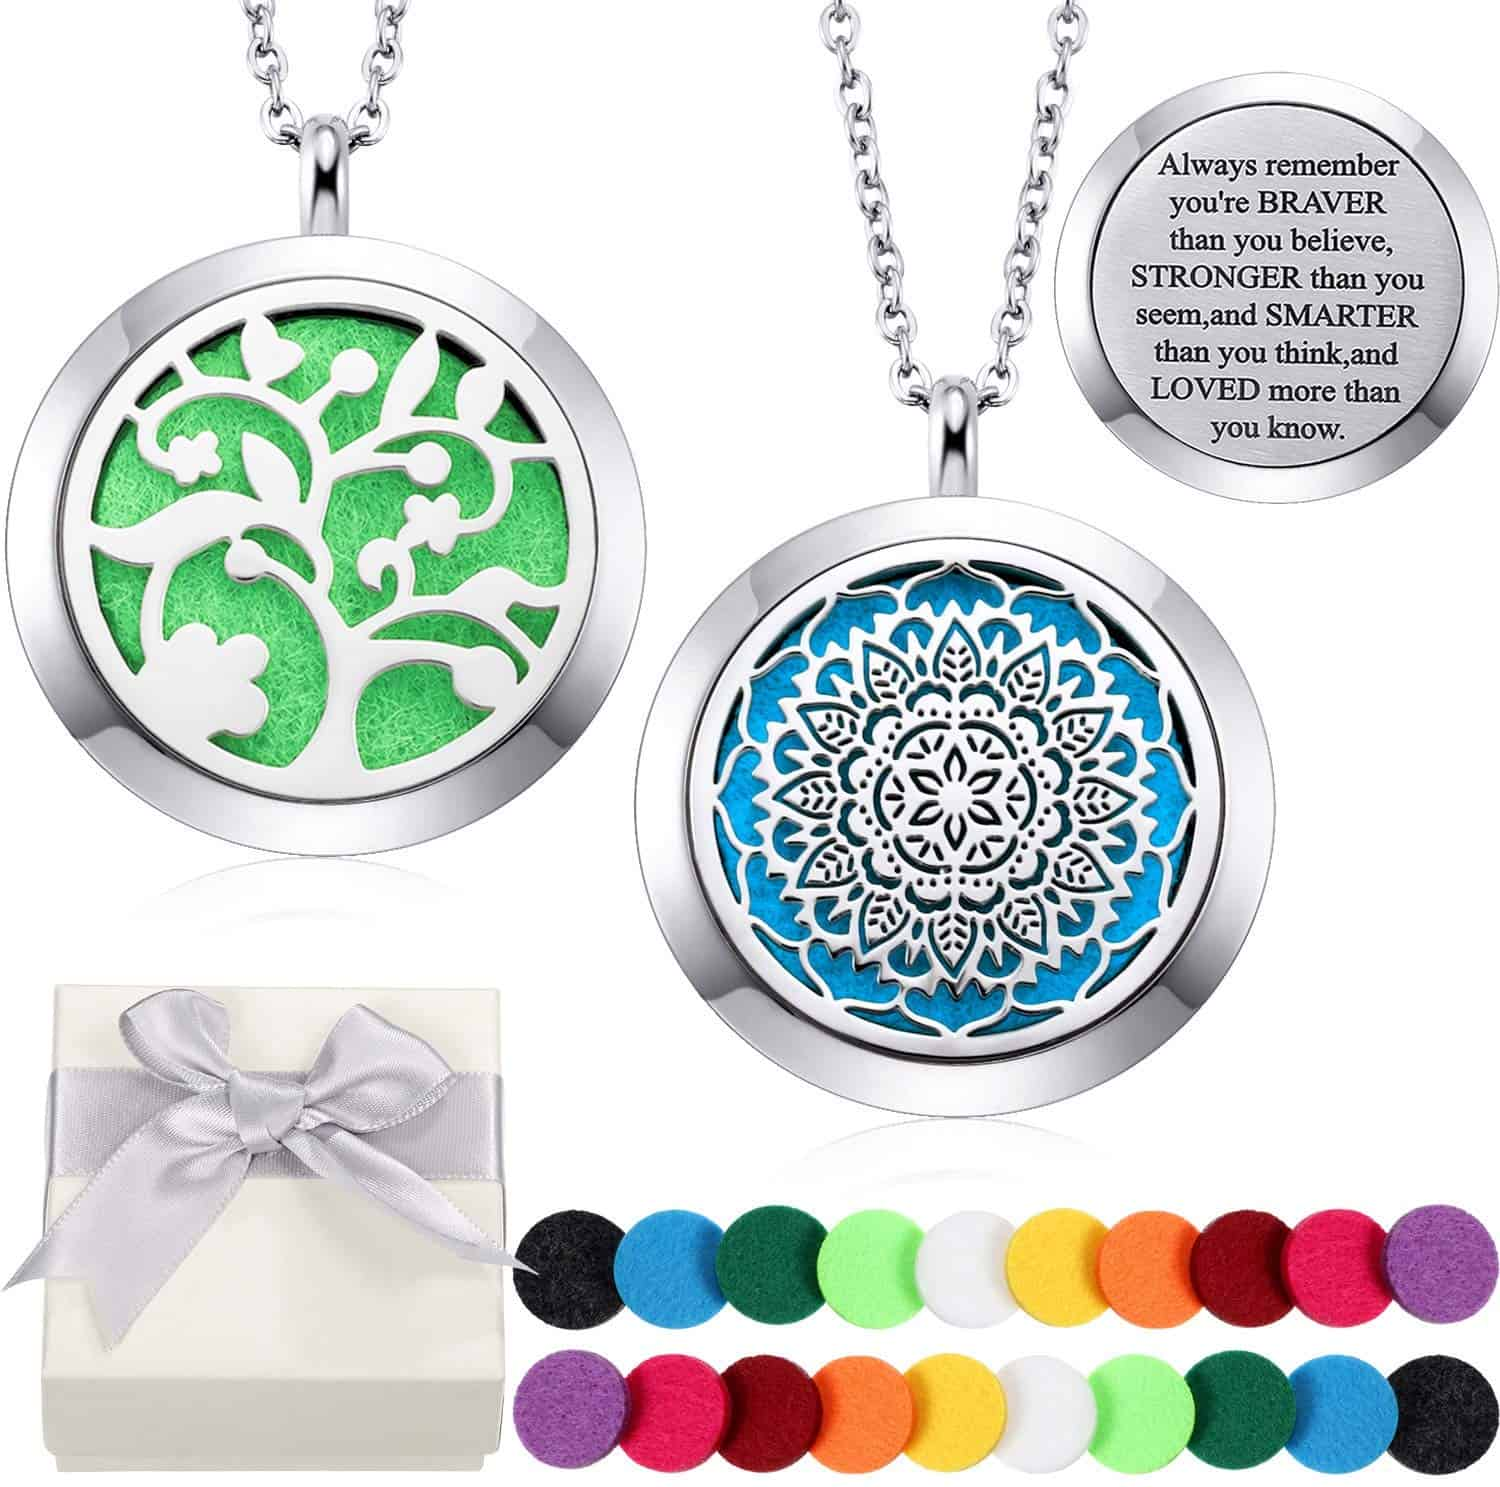 Essential oil diffuser necklace.